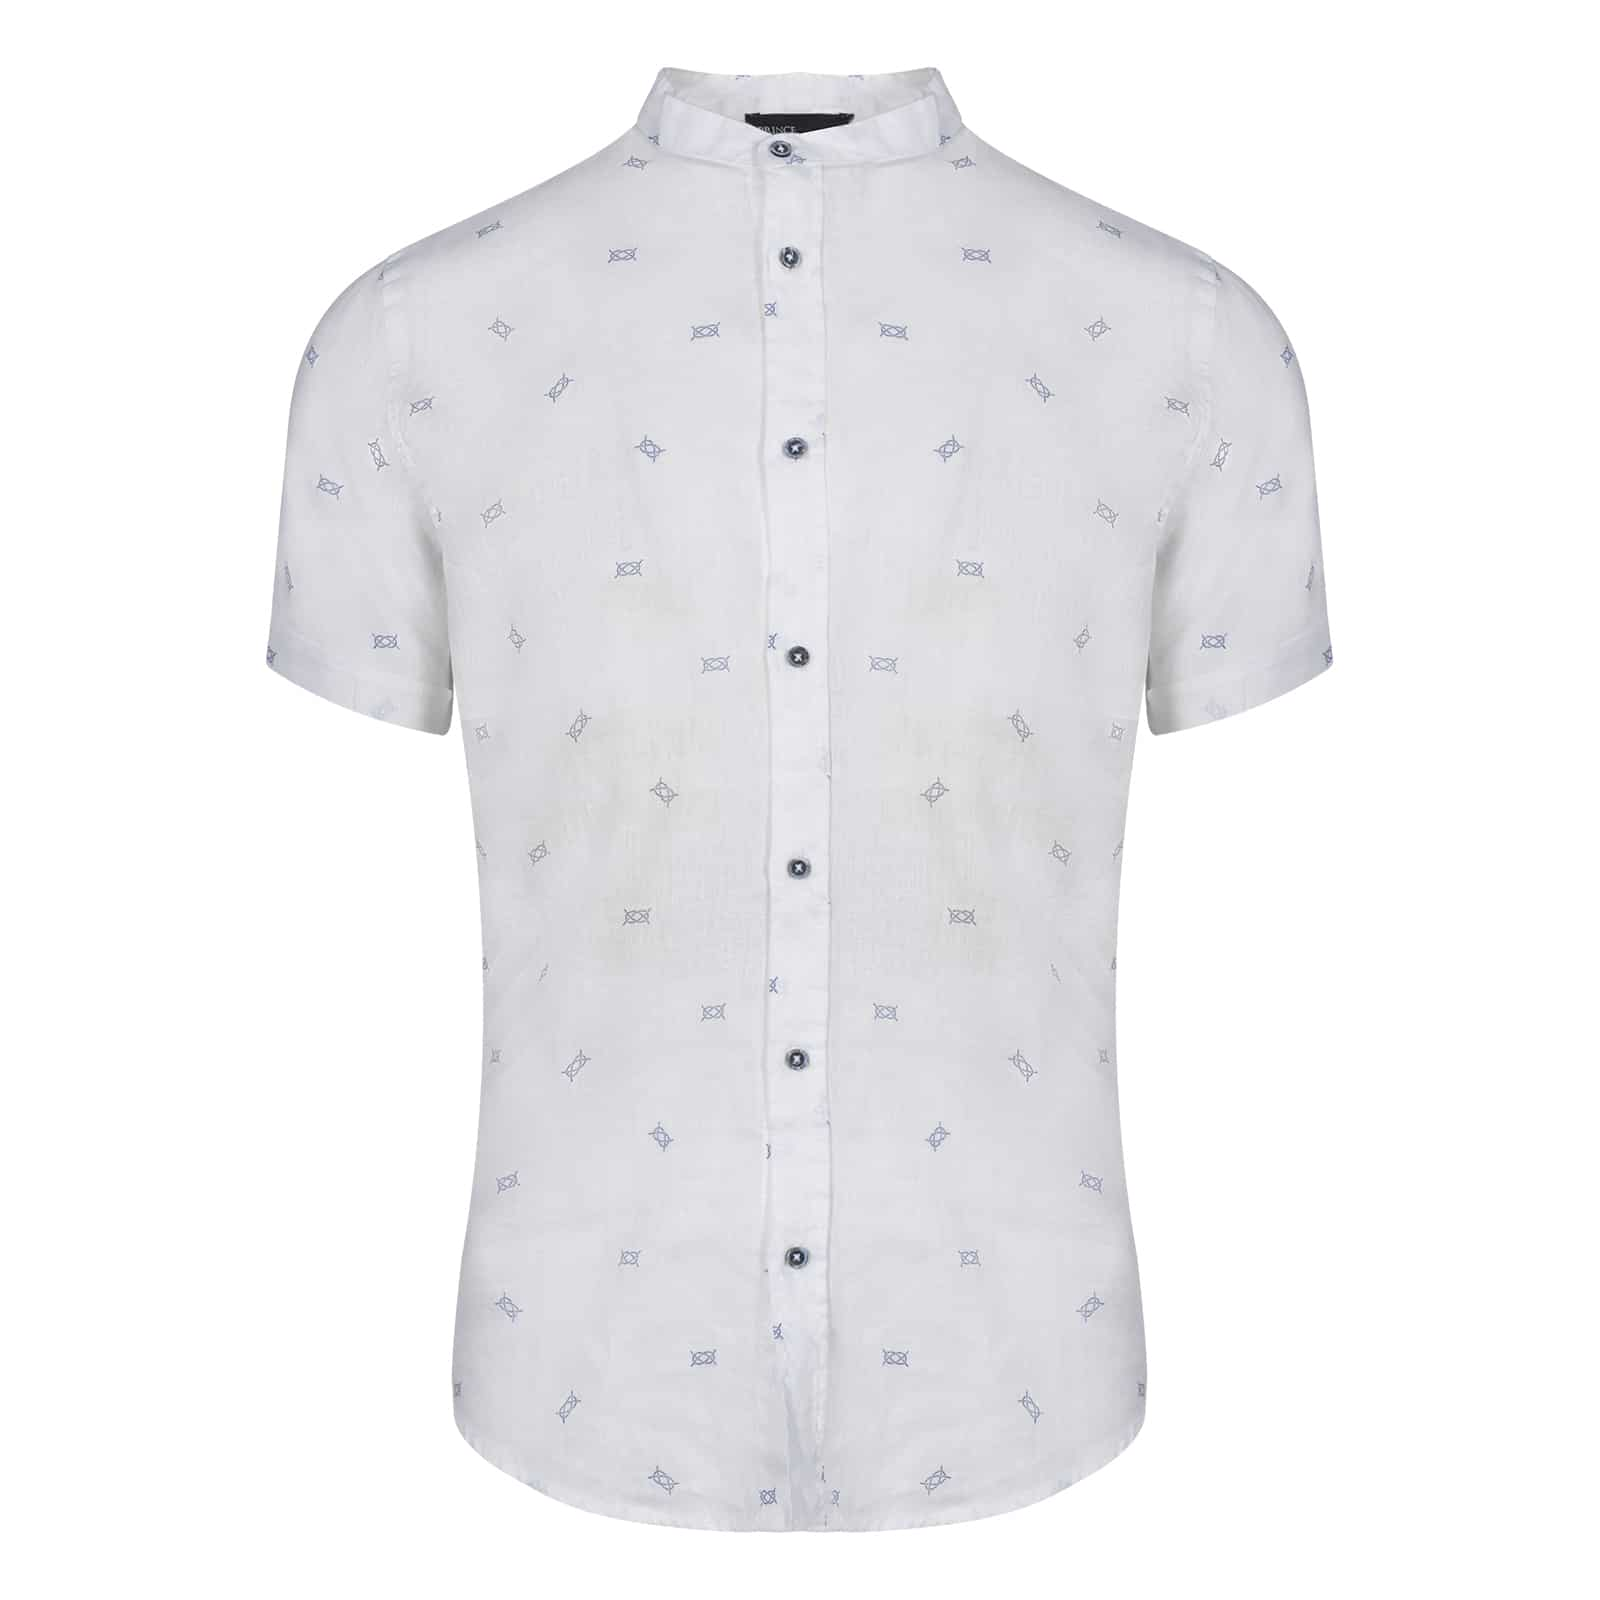 fe778e0aedc Prince Oliver Πουκάμισο Λευκό με Mao Γιακά 100% Linen - Collection S/S